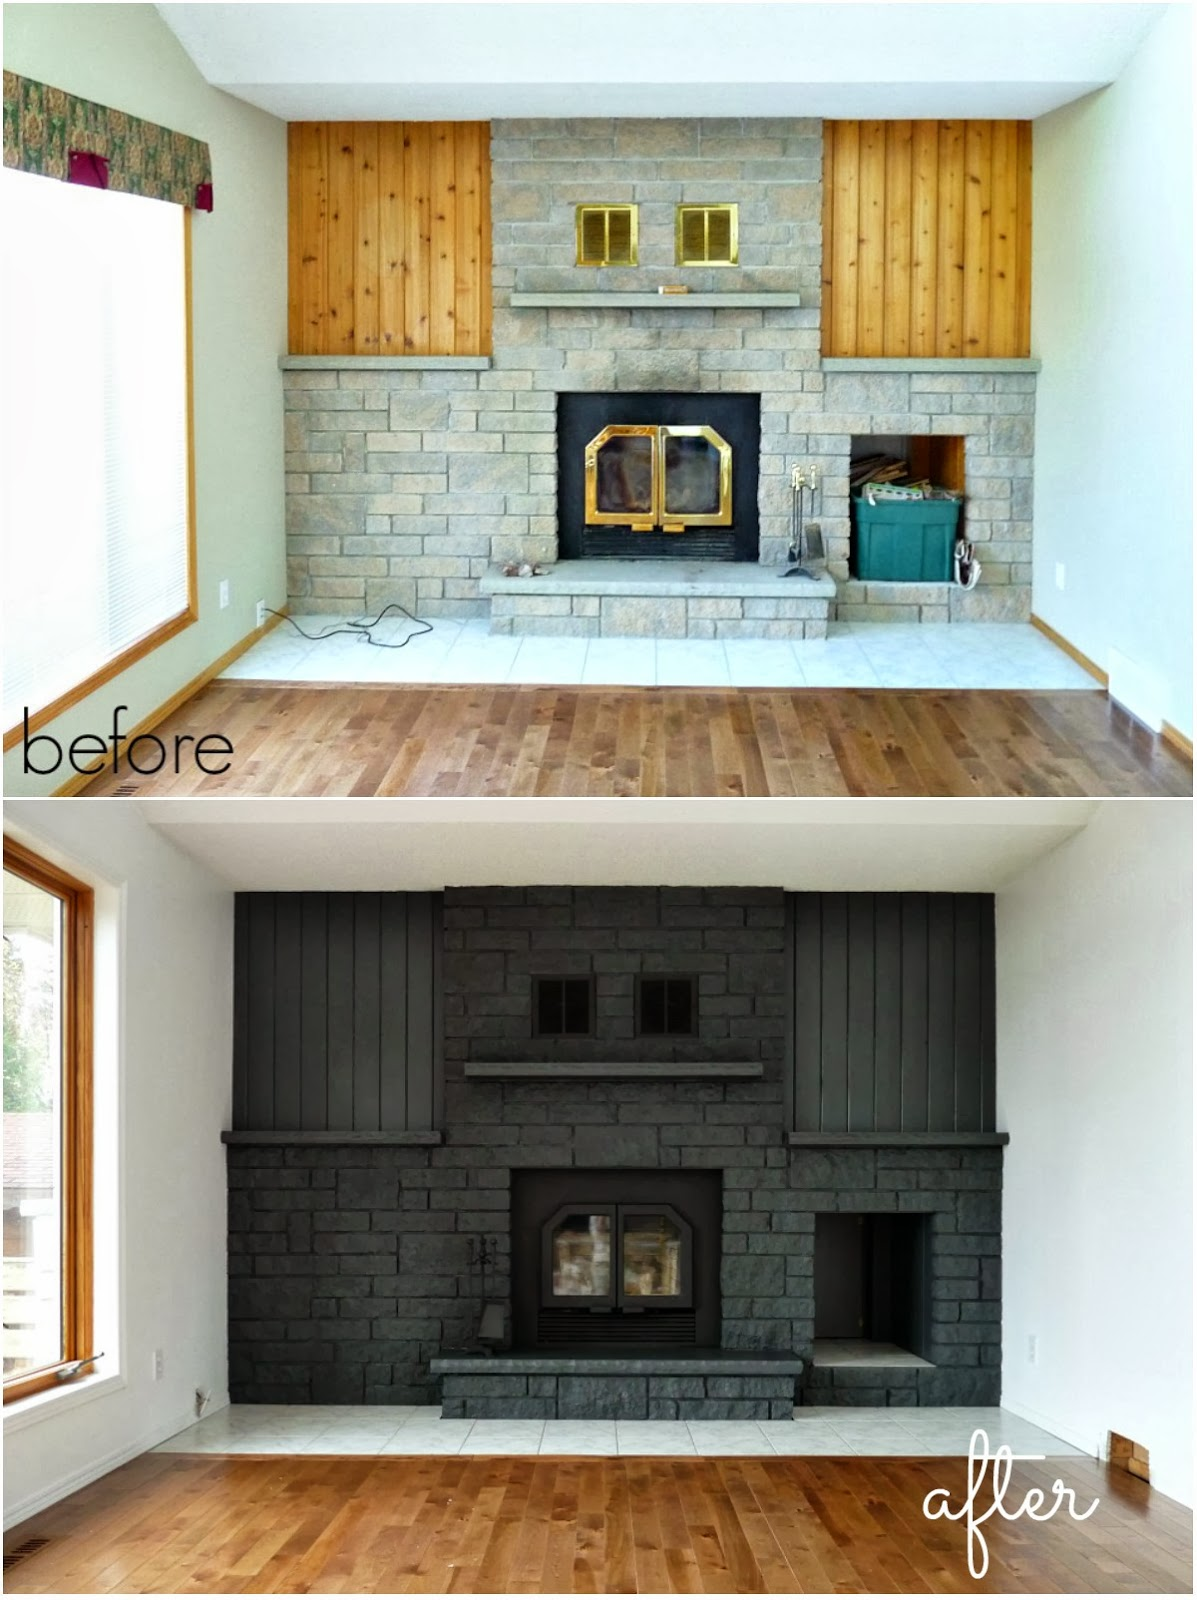 Budget-Friendly Fireplace Makeover by @danslelakehouse // How to Paint a Fireplace